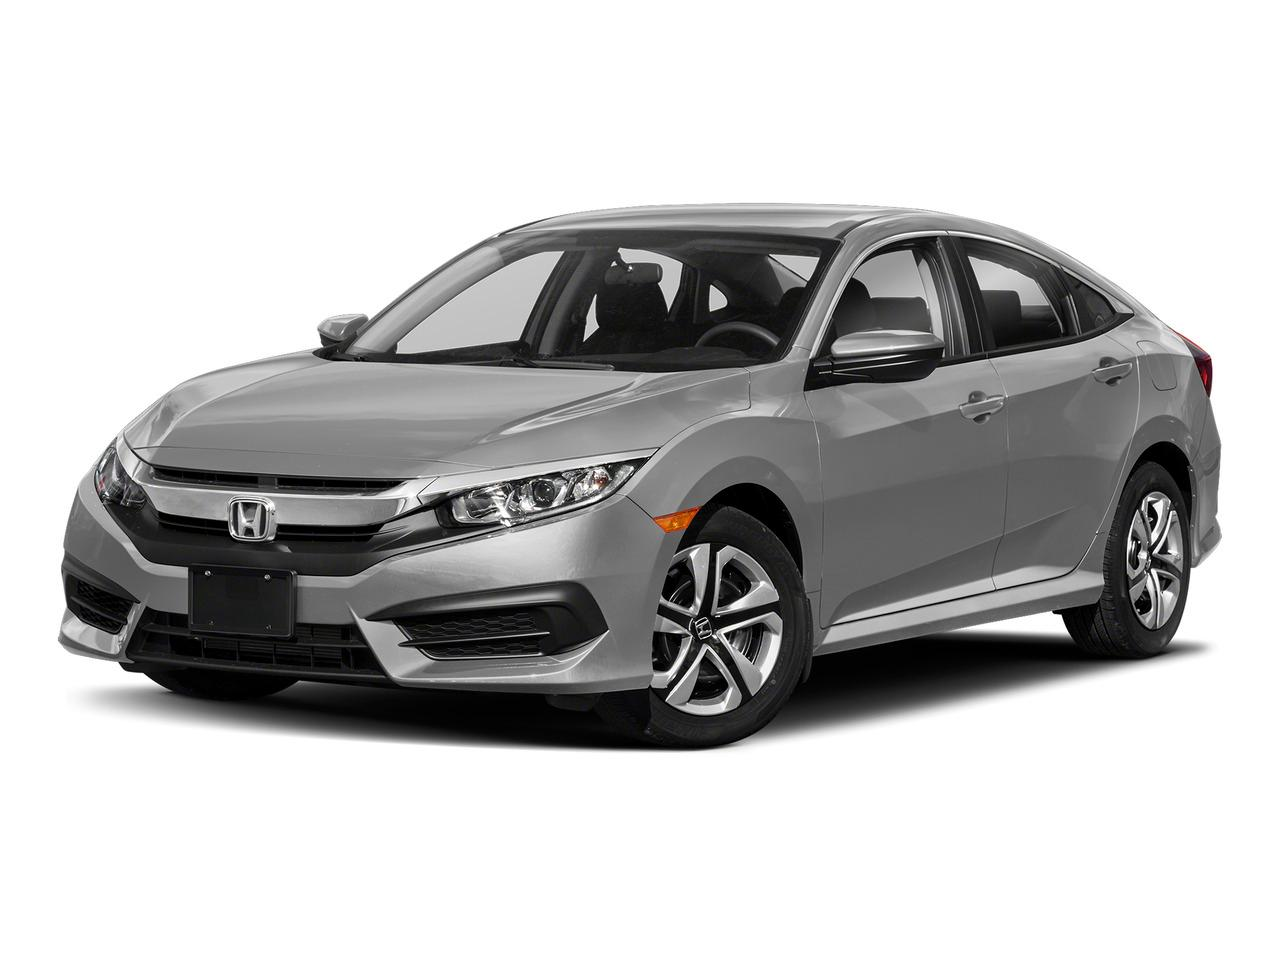 2018 Honda Civic Sedan Vehicle Photo in Pittsburg, CA 94565